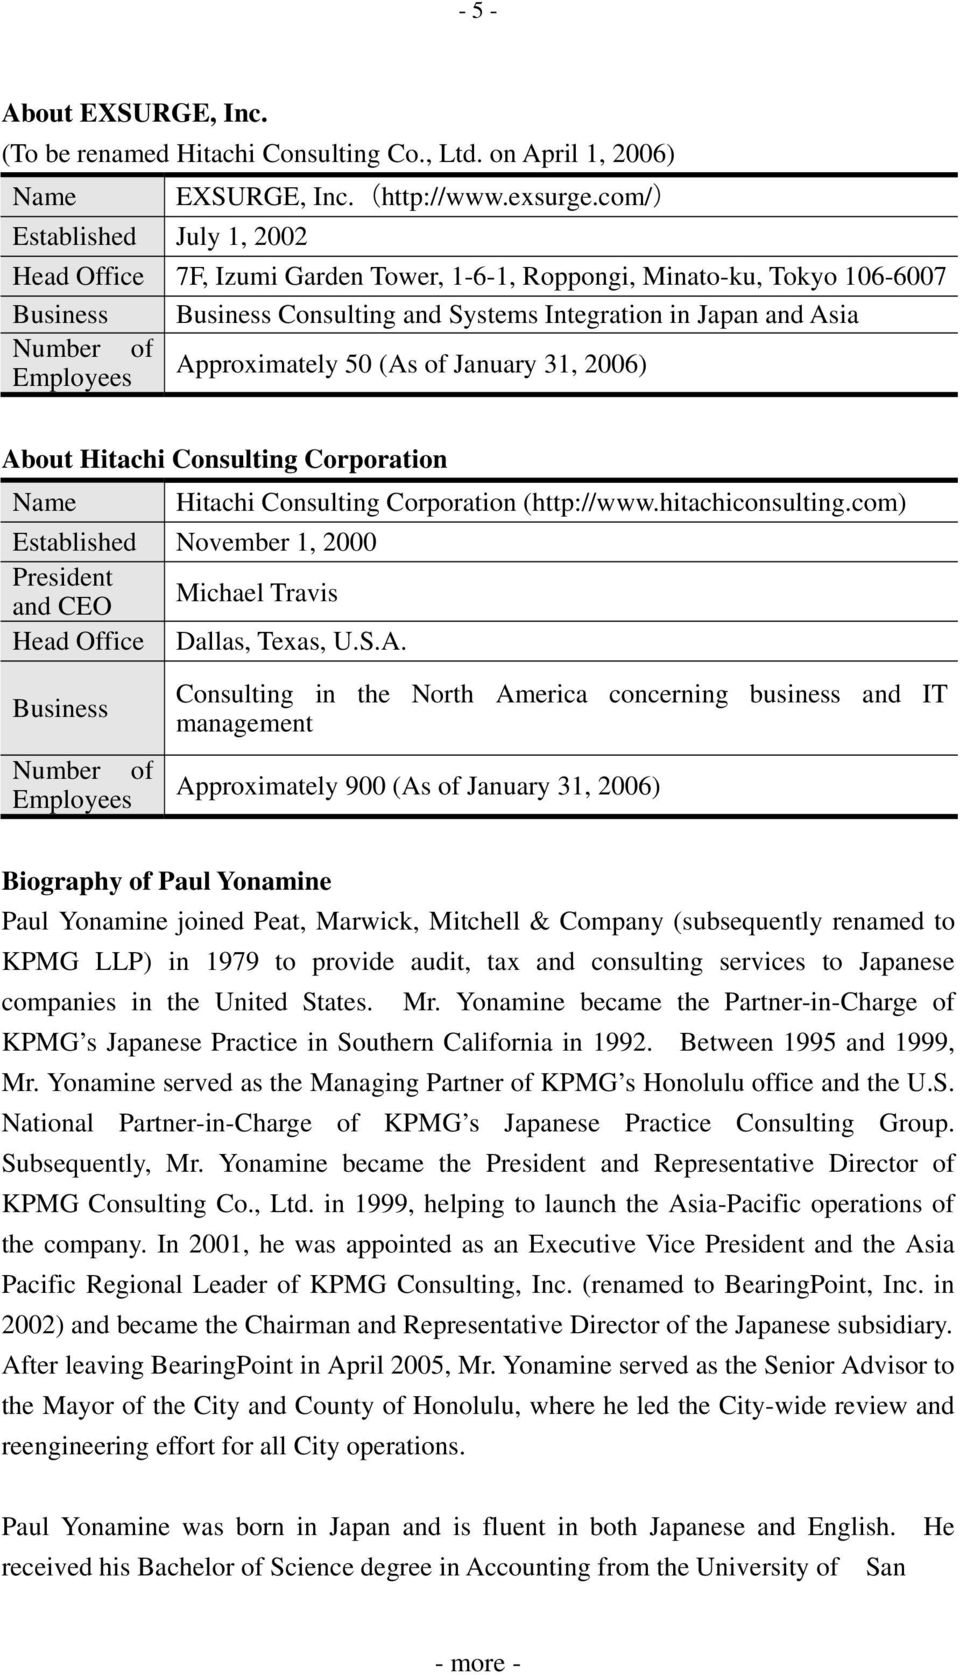 Employees Approximately 50 (As of January 31, 2006) About Hitachi Consulting Corporation Name Hitachi Consulting Corporation (http://www.hitachiconsulting.